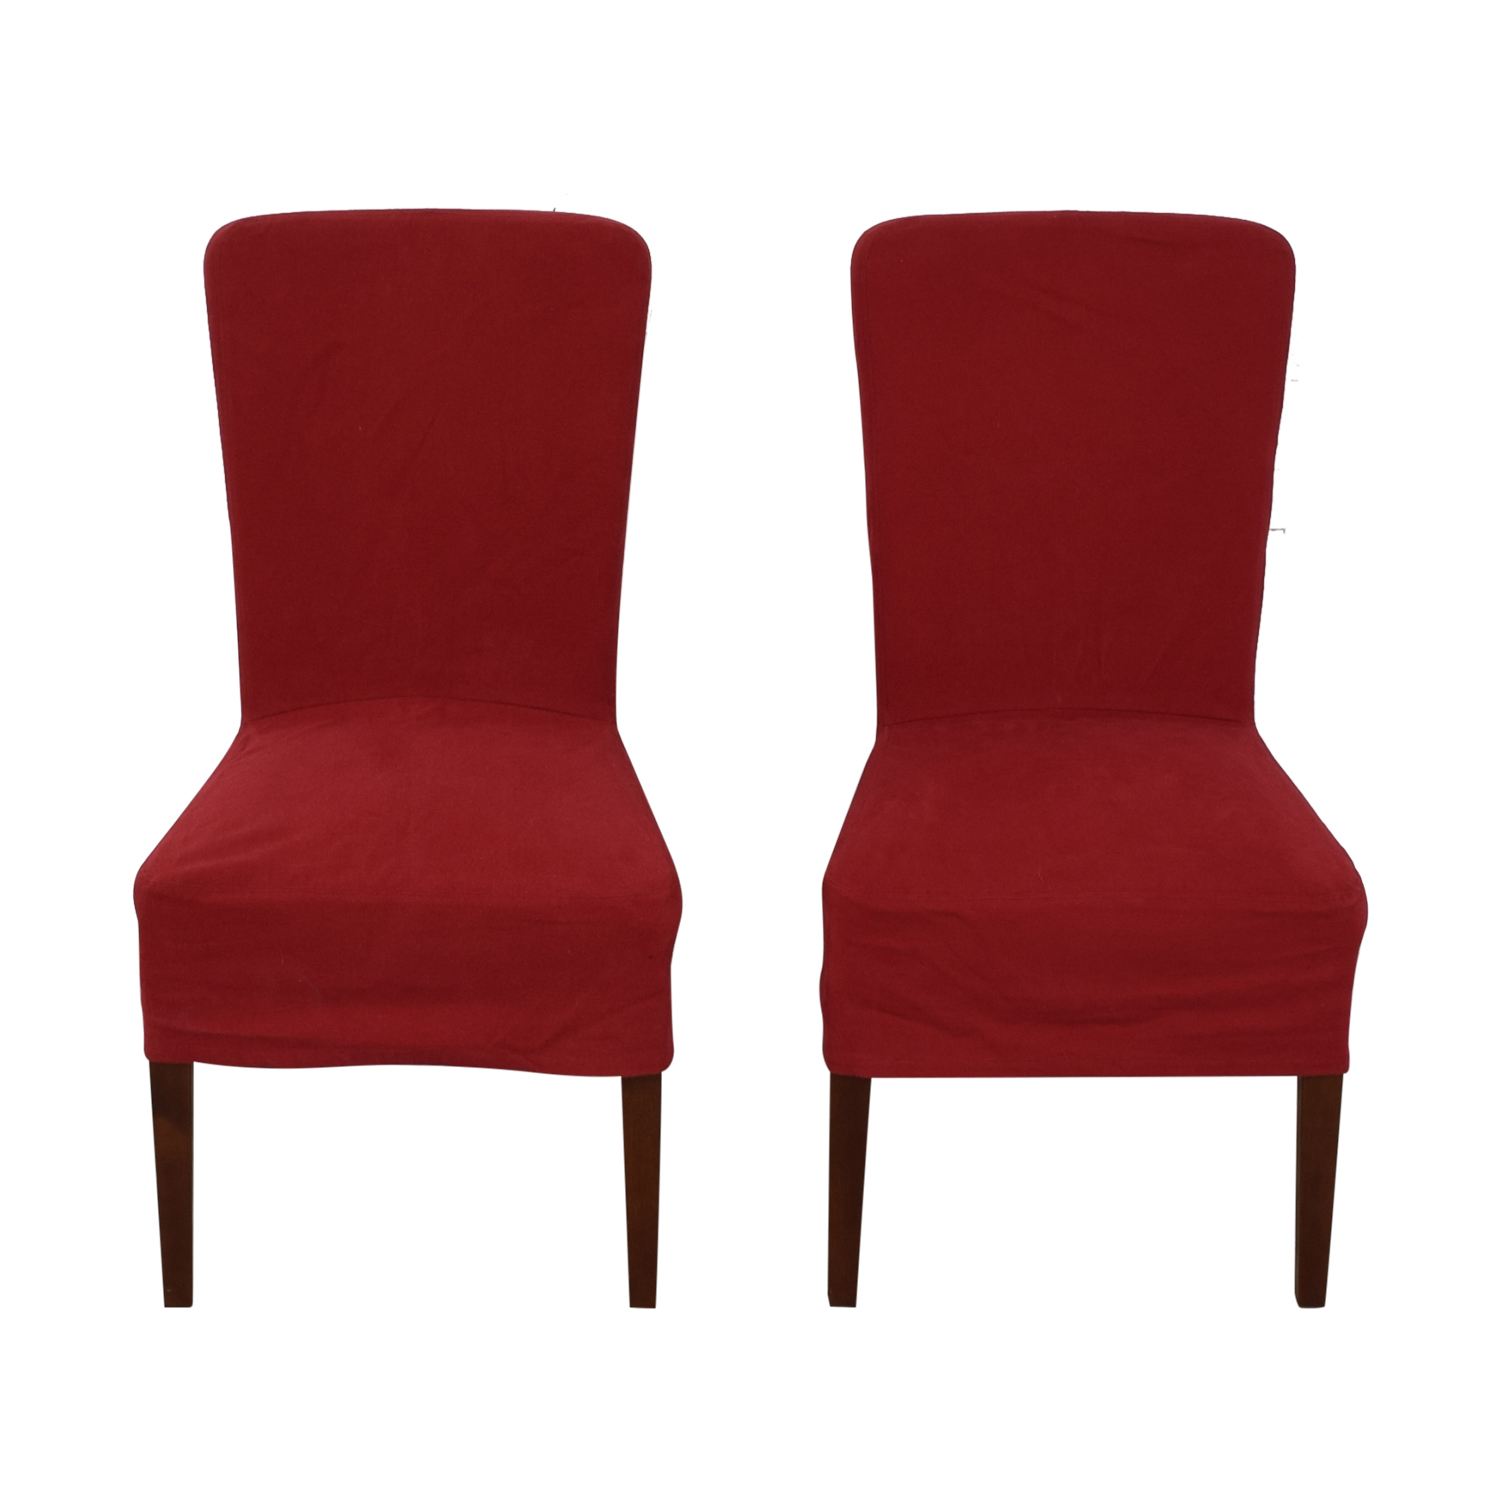 Pottery Barn Pottery Barn Parsons Red Chairs coupon